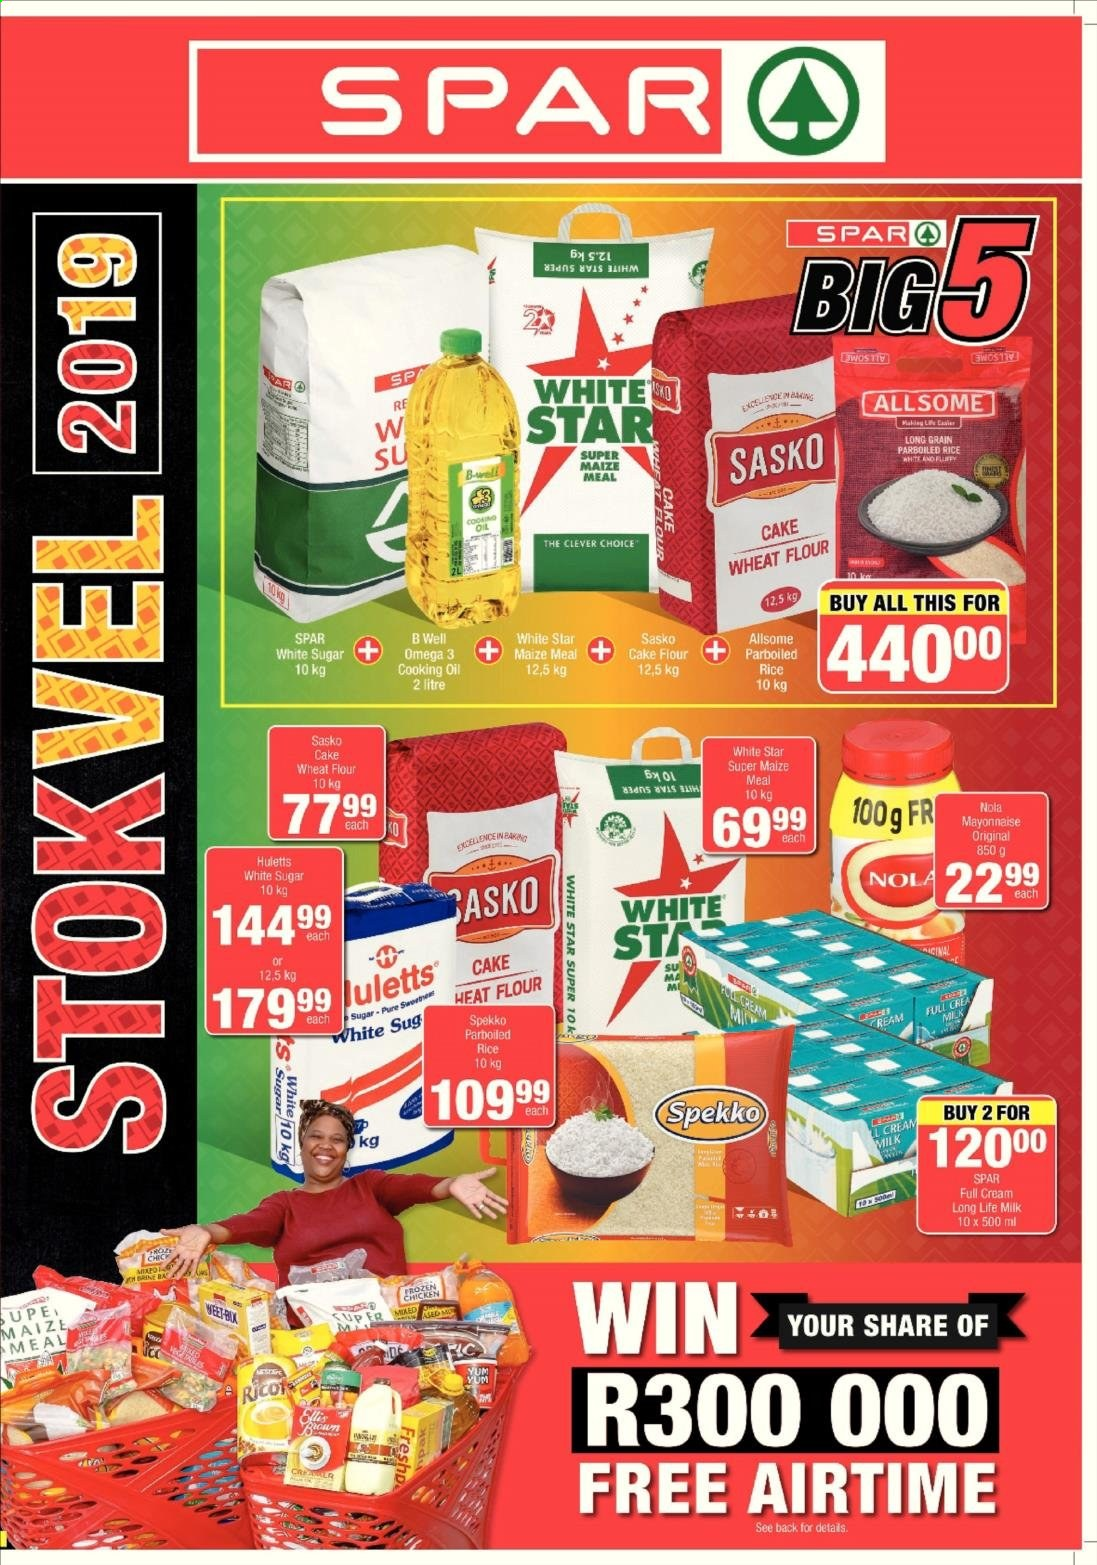 SPAR catalogue  - 11.25.2019 - 12.17.2019. Page 1.